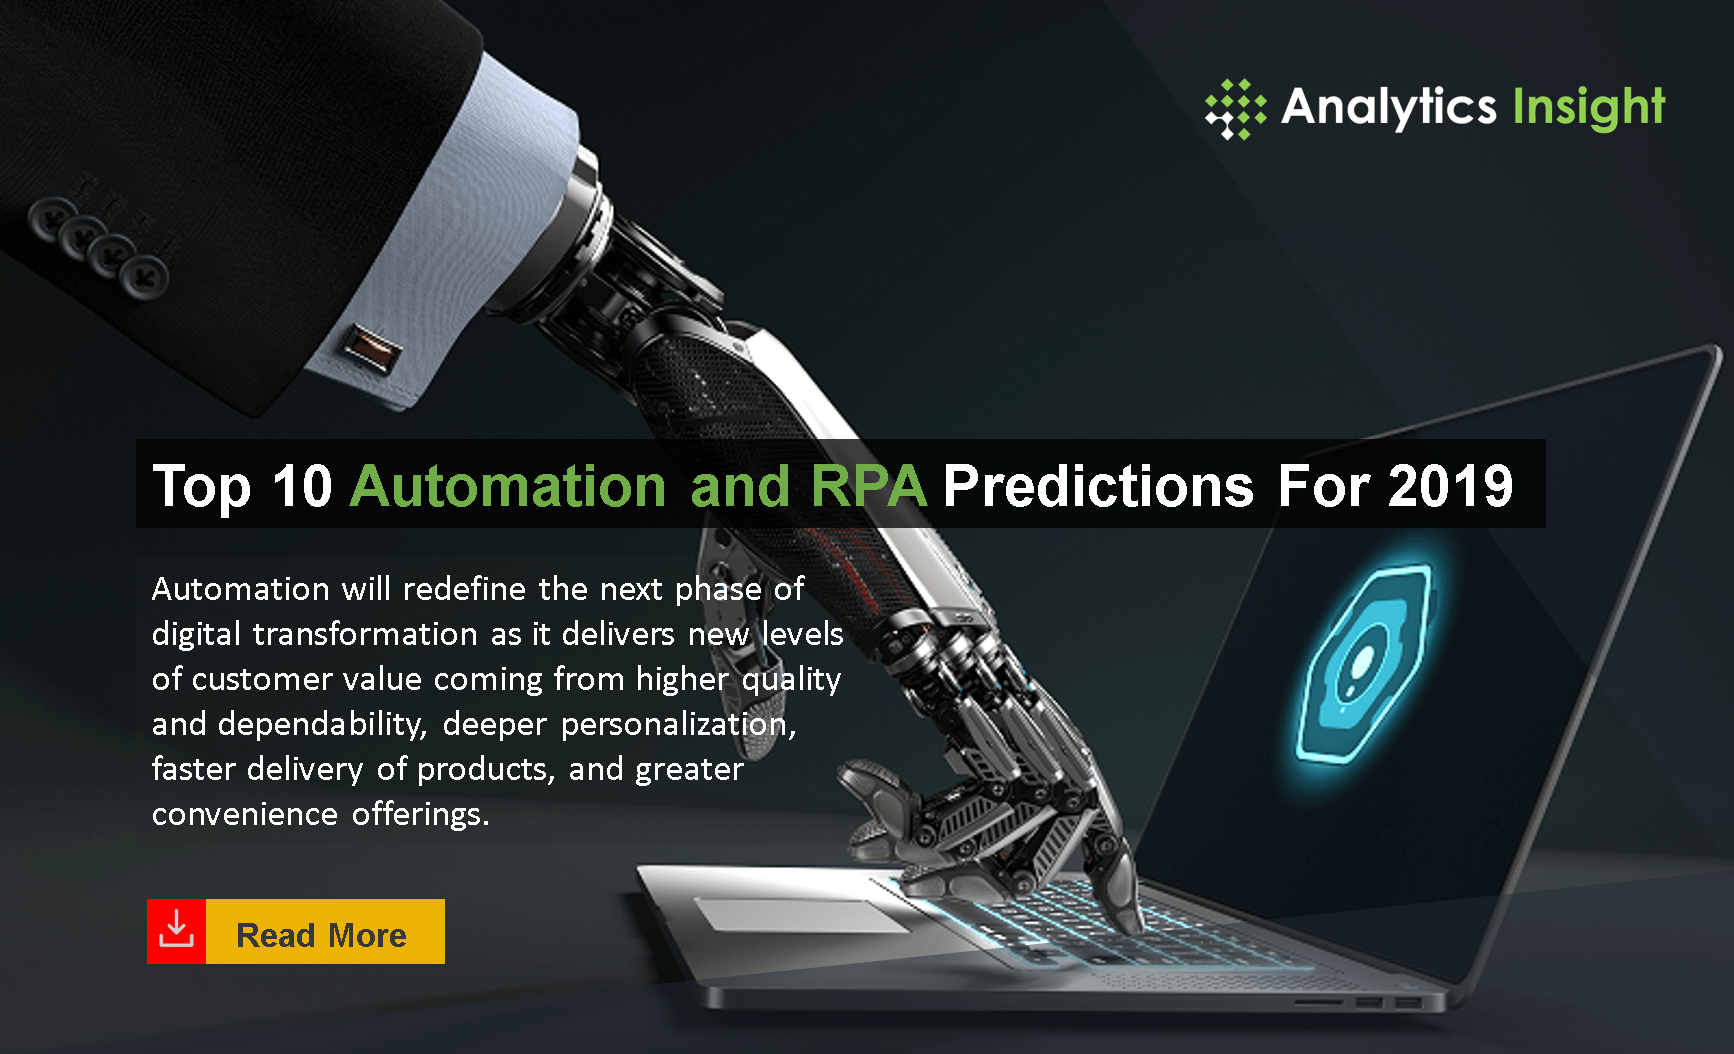 RPA predictions for 2019